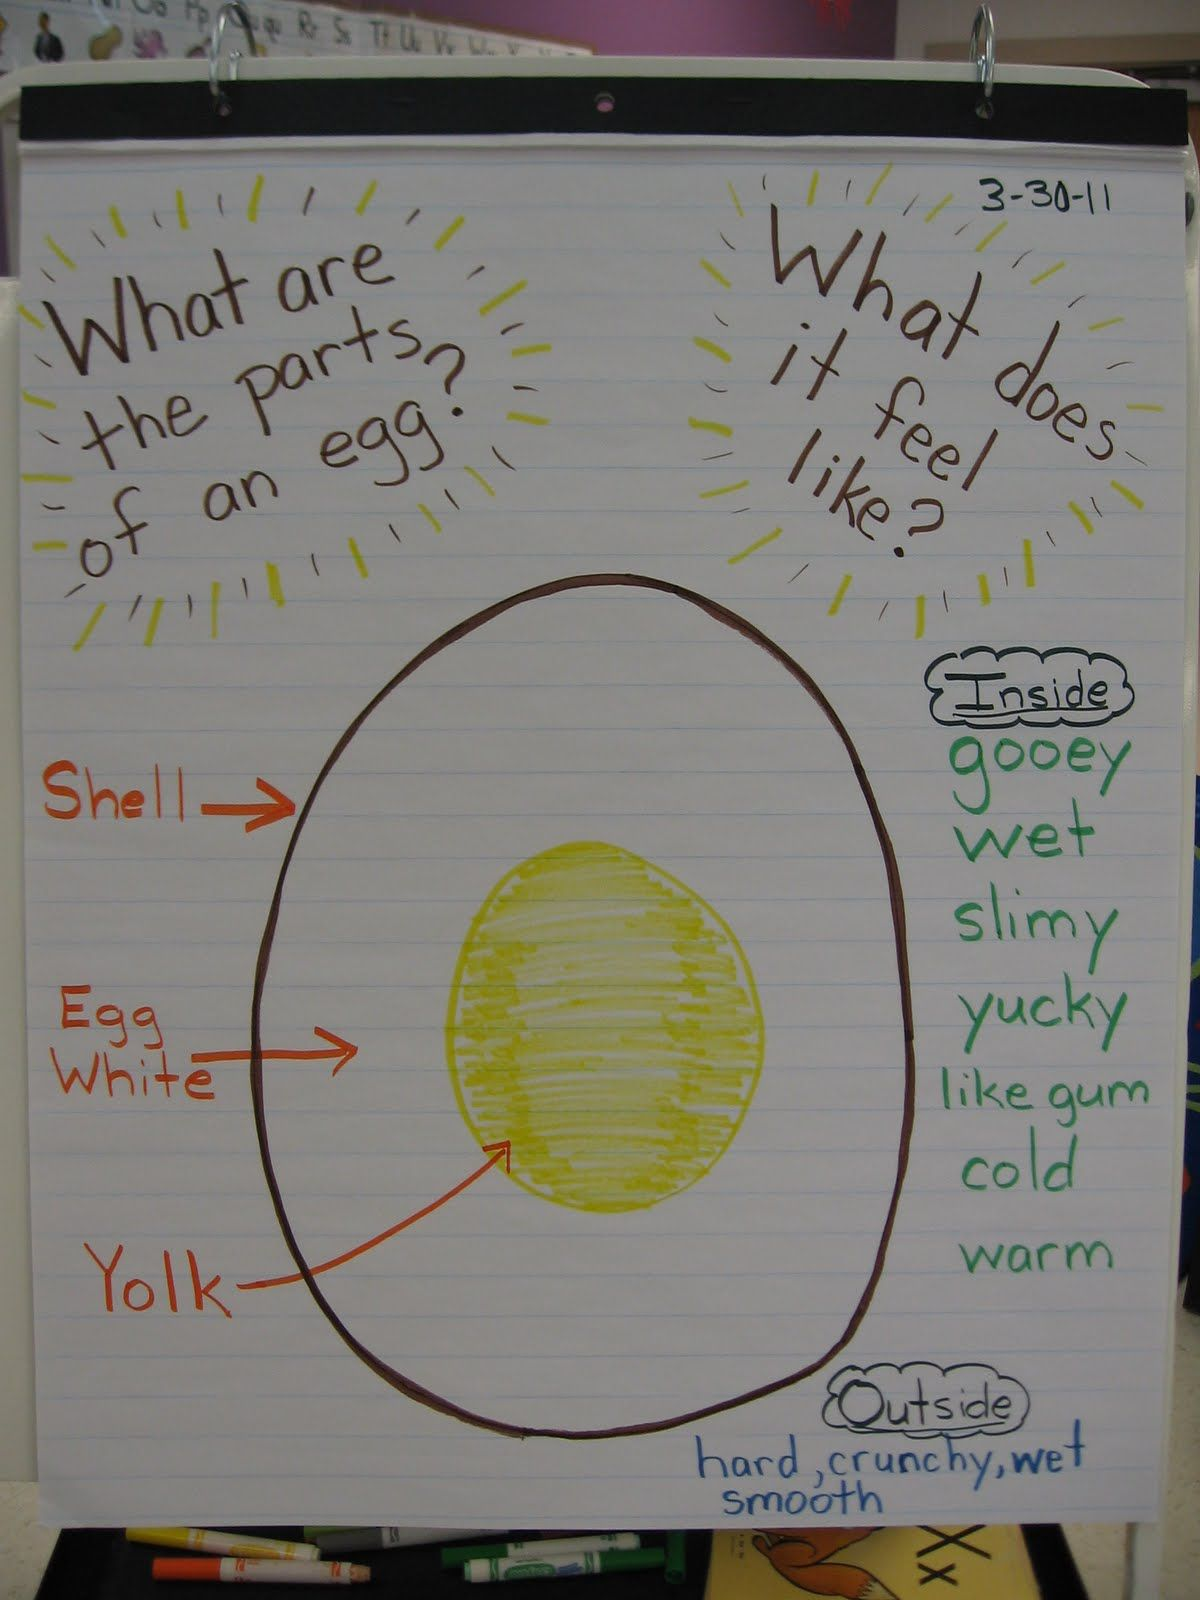 parts of an egg preschool this blog has a lot of cool hands on teaching lessons for toddlers stephanie close brown [ 1200 x 1600 Pixel ]